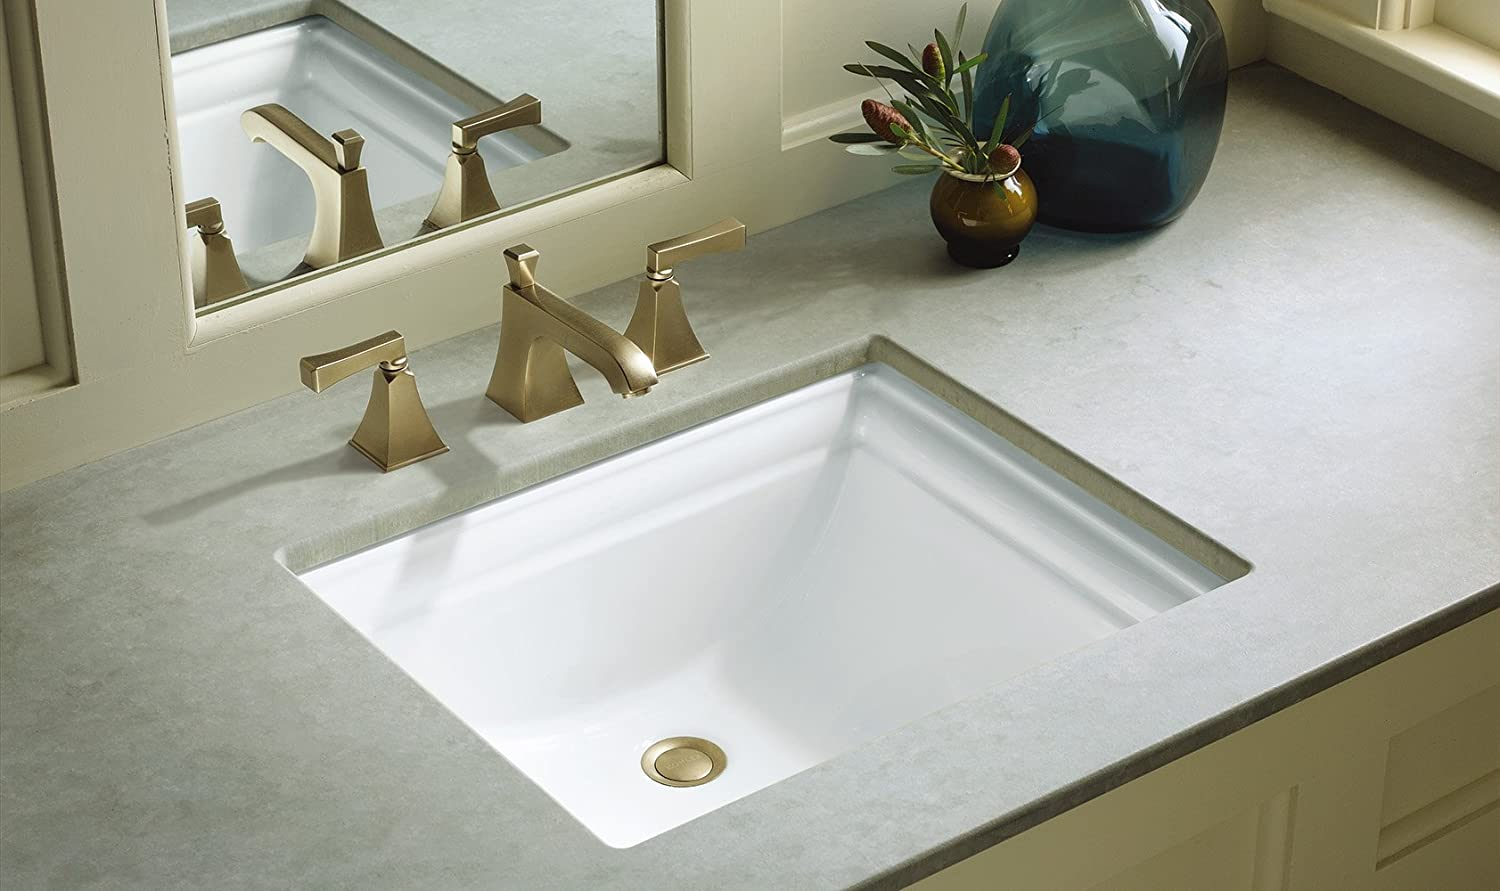 Delicieux KOHLER K 2339 NY Memoirs Undercounter Bathroom Sink, Dune   Vessel Sinks    Amazon.com